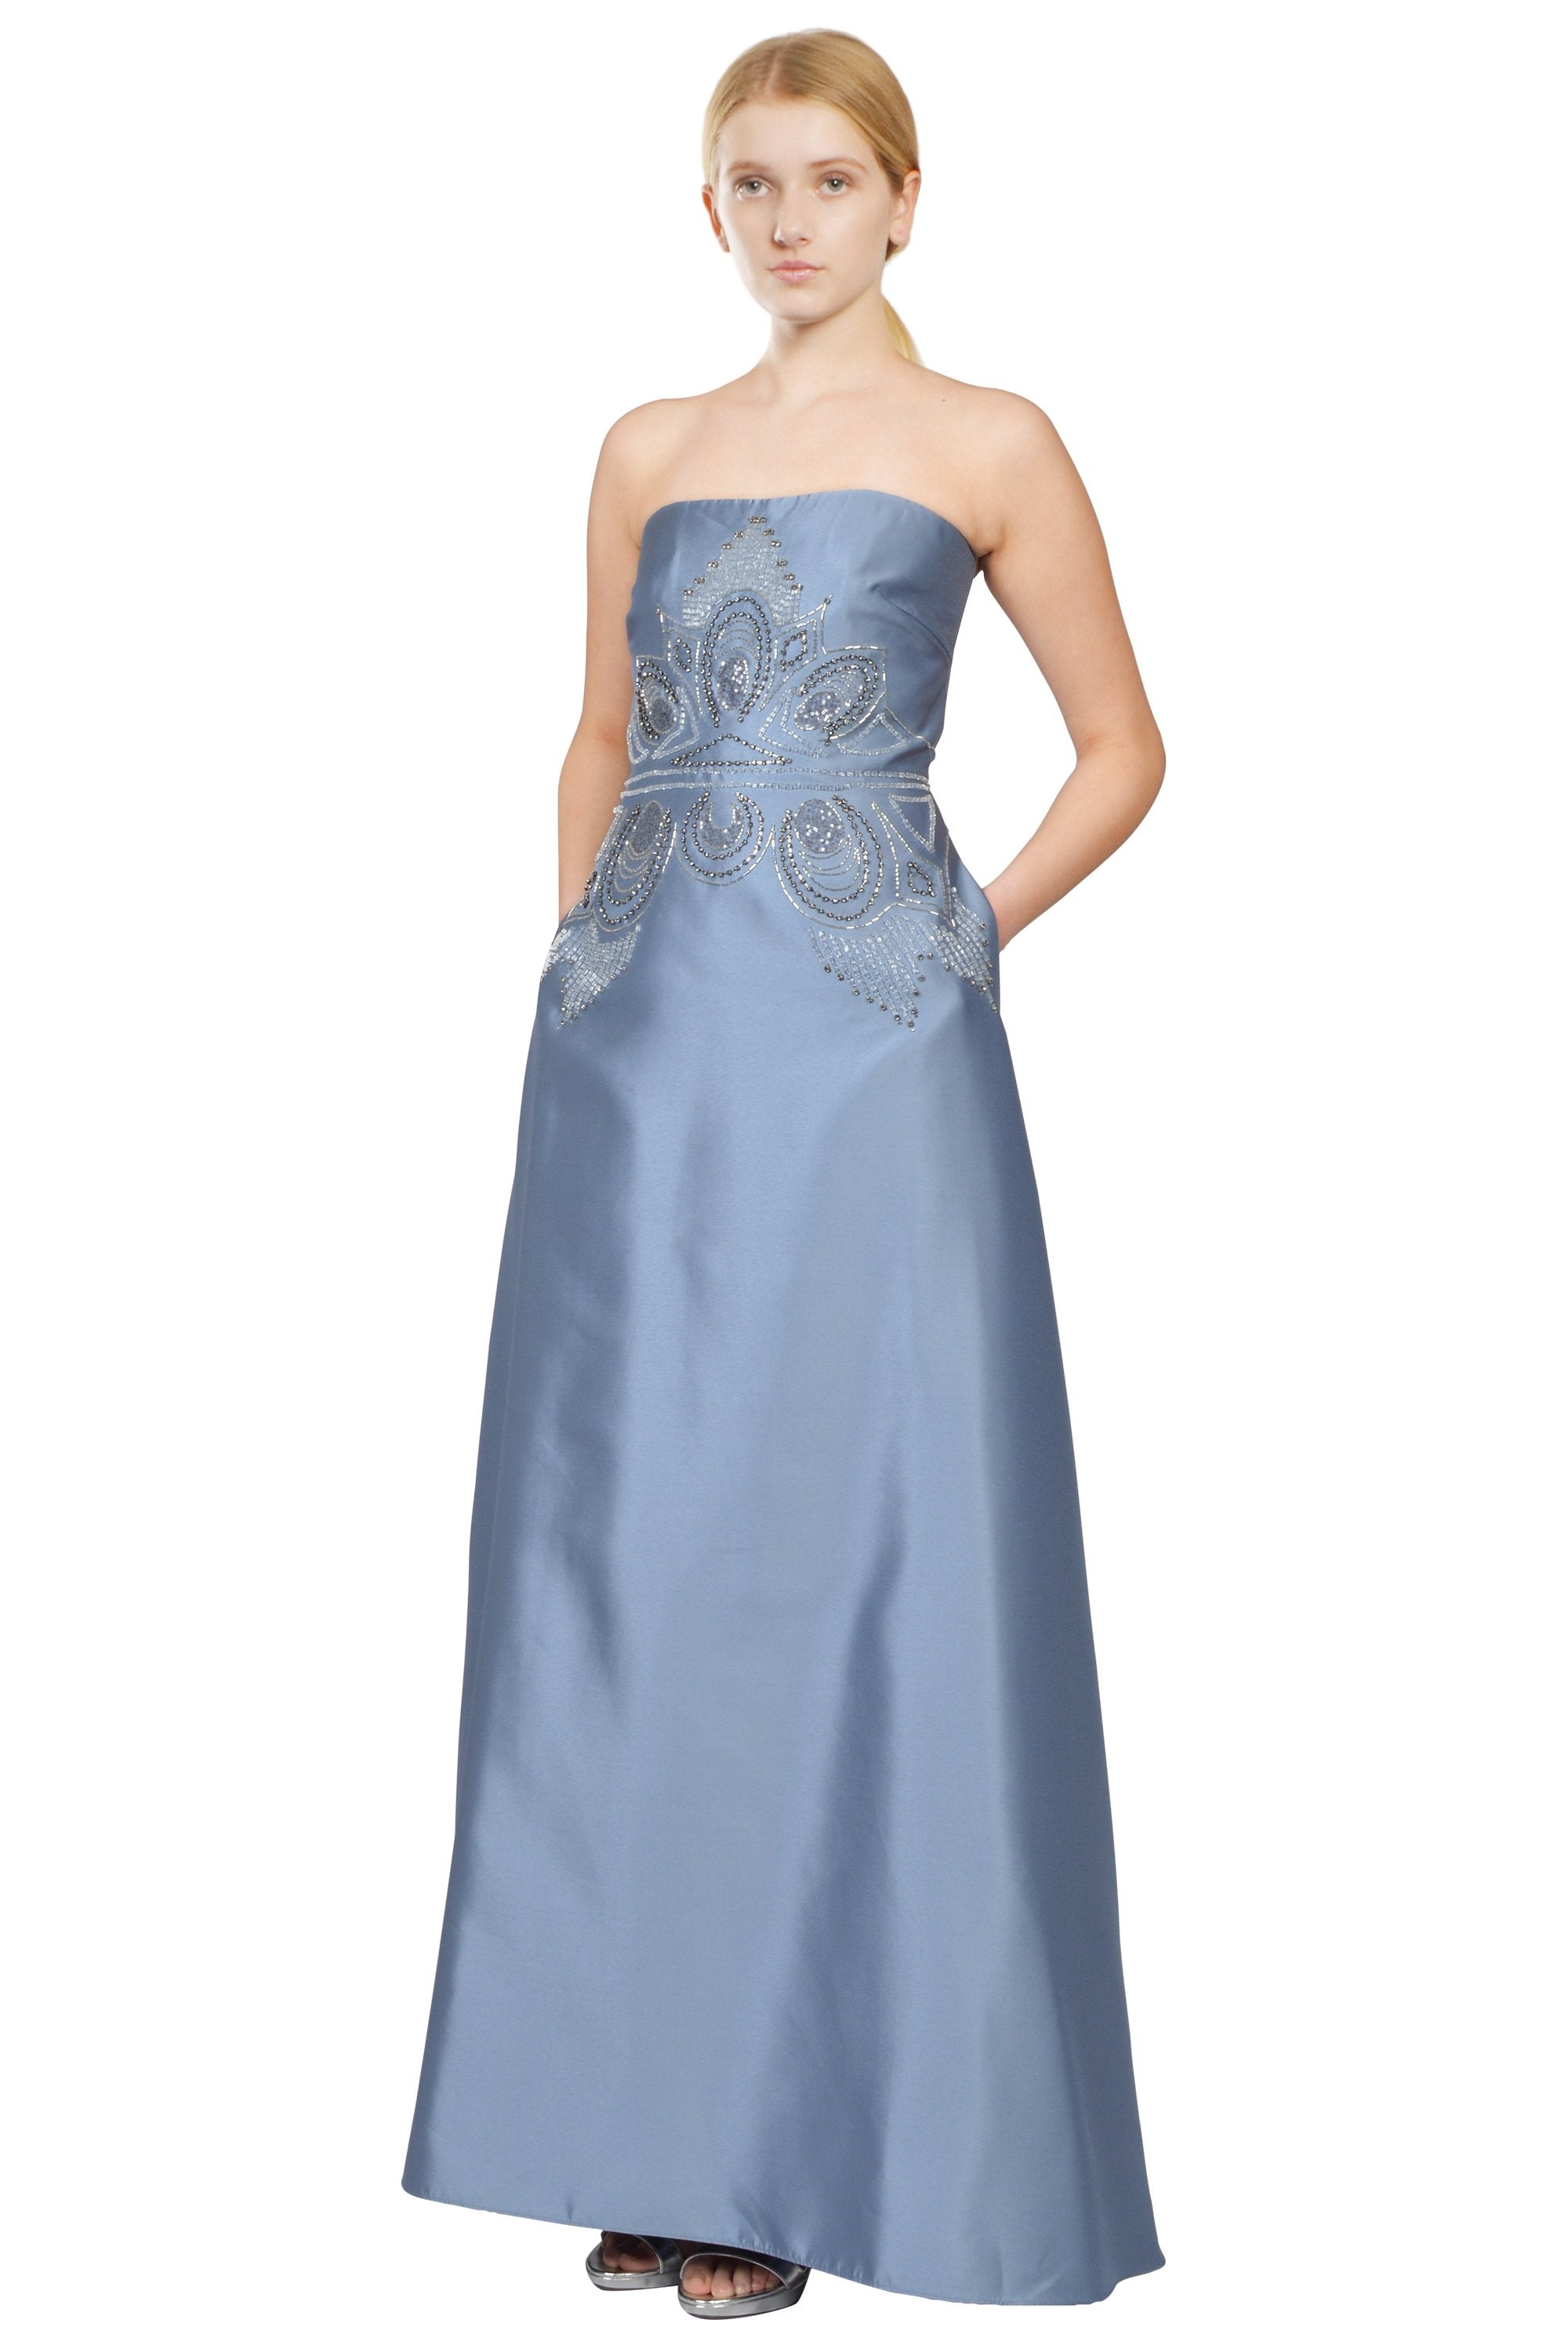 Icy Blue Strapless Silky Twill Beaded Evening Gown – Elilhaam